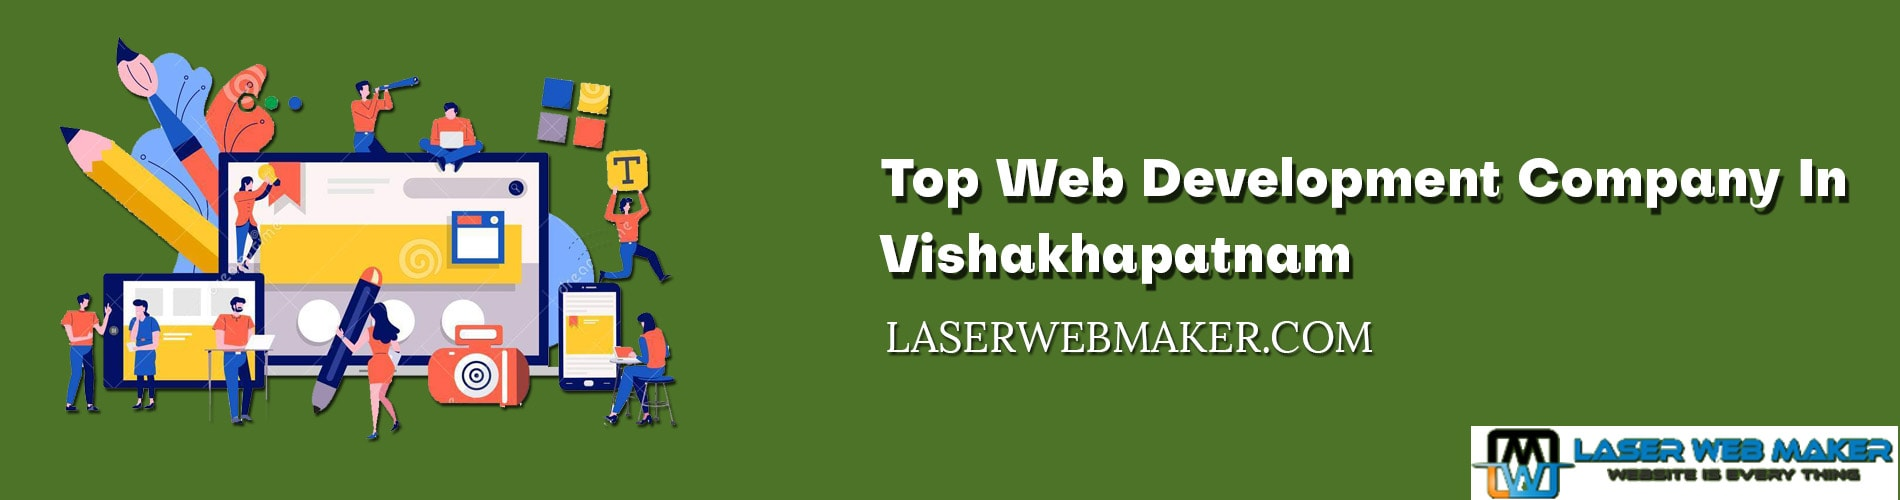 Top Web Development Company In Vishakhapatnam